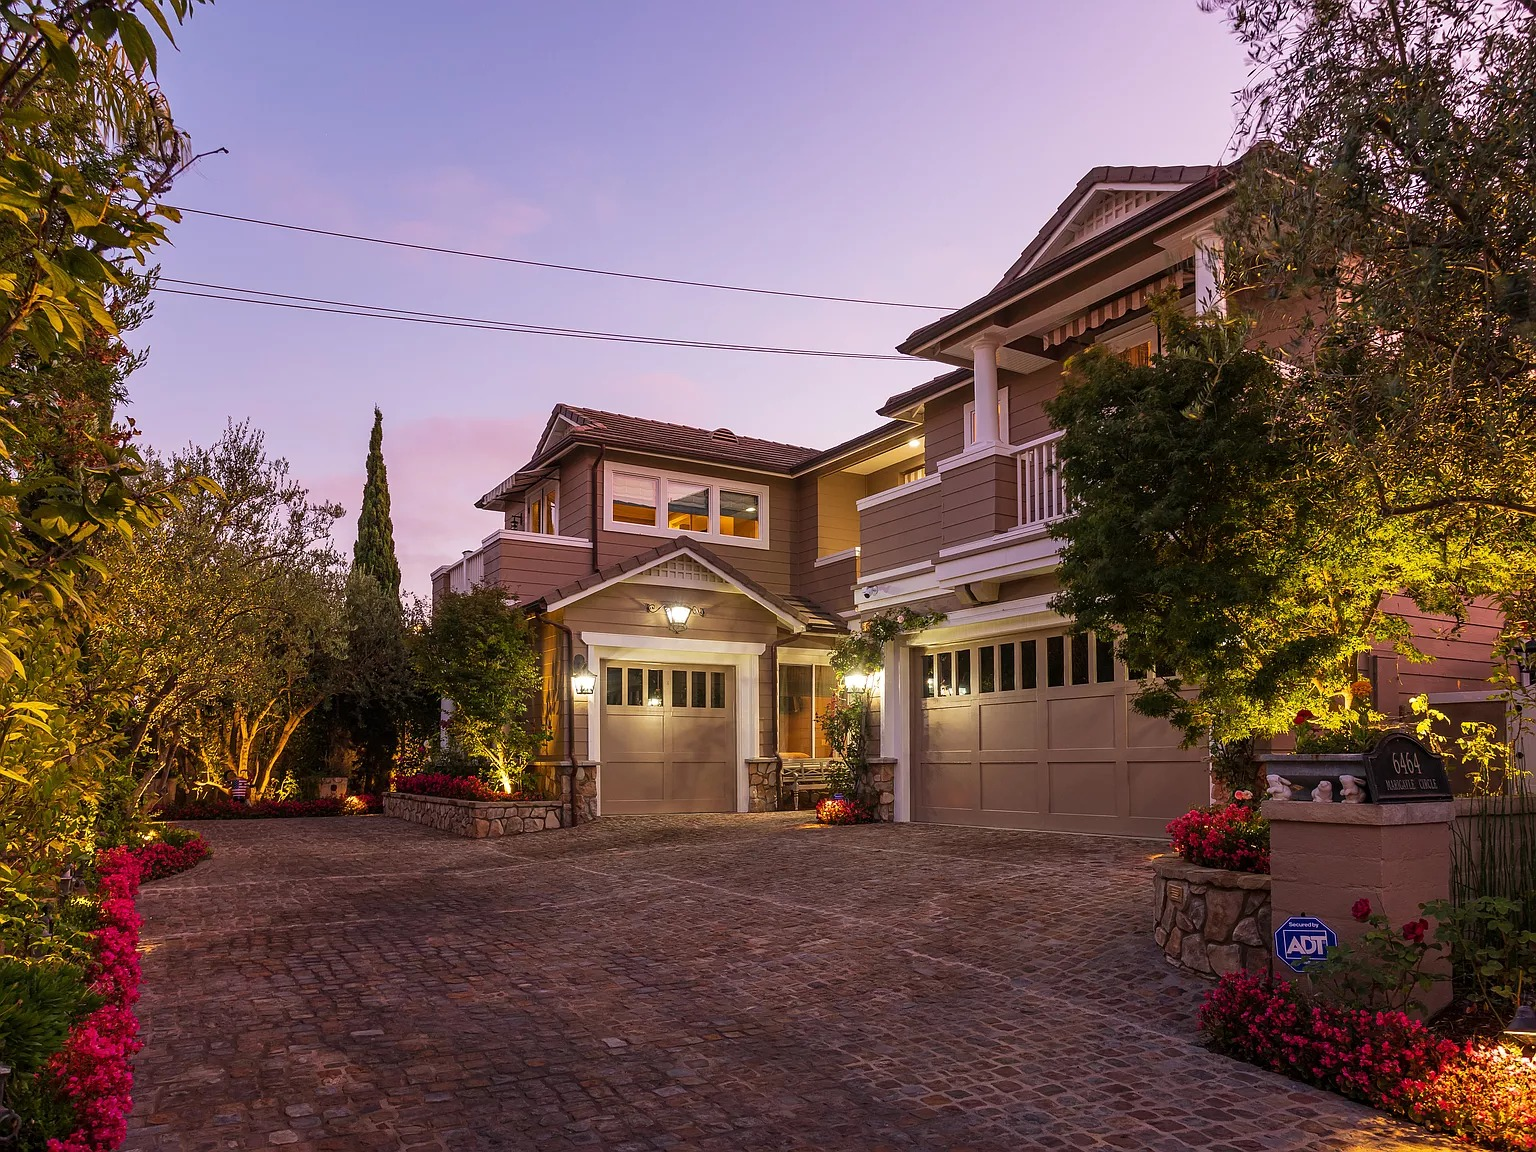 6464 Marigayle Cir, Huntington Beach, CA 92648 - $6,900,000 home for sale, house images, photos and pics gallery